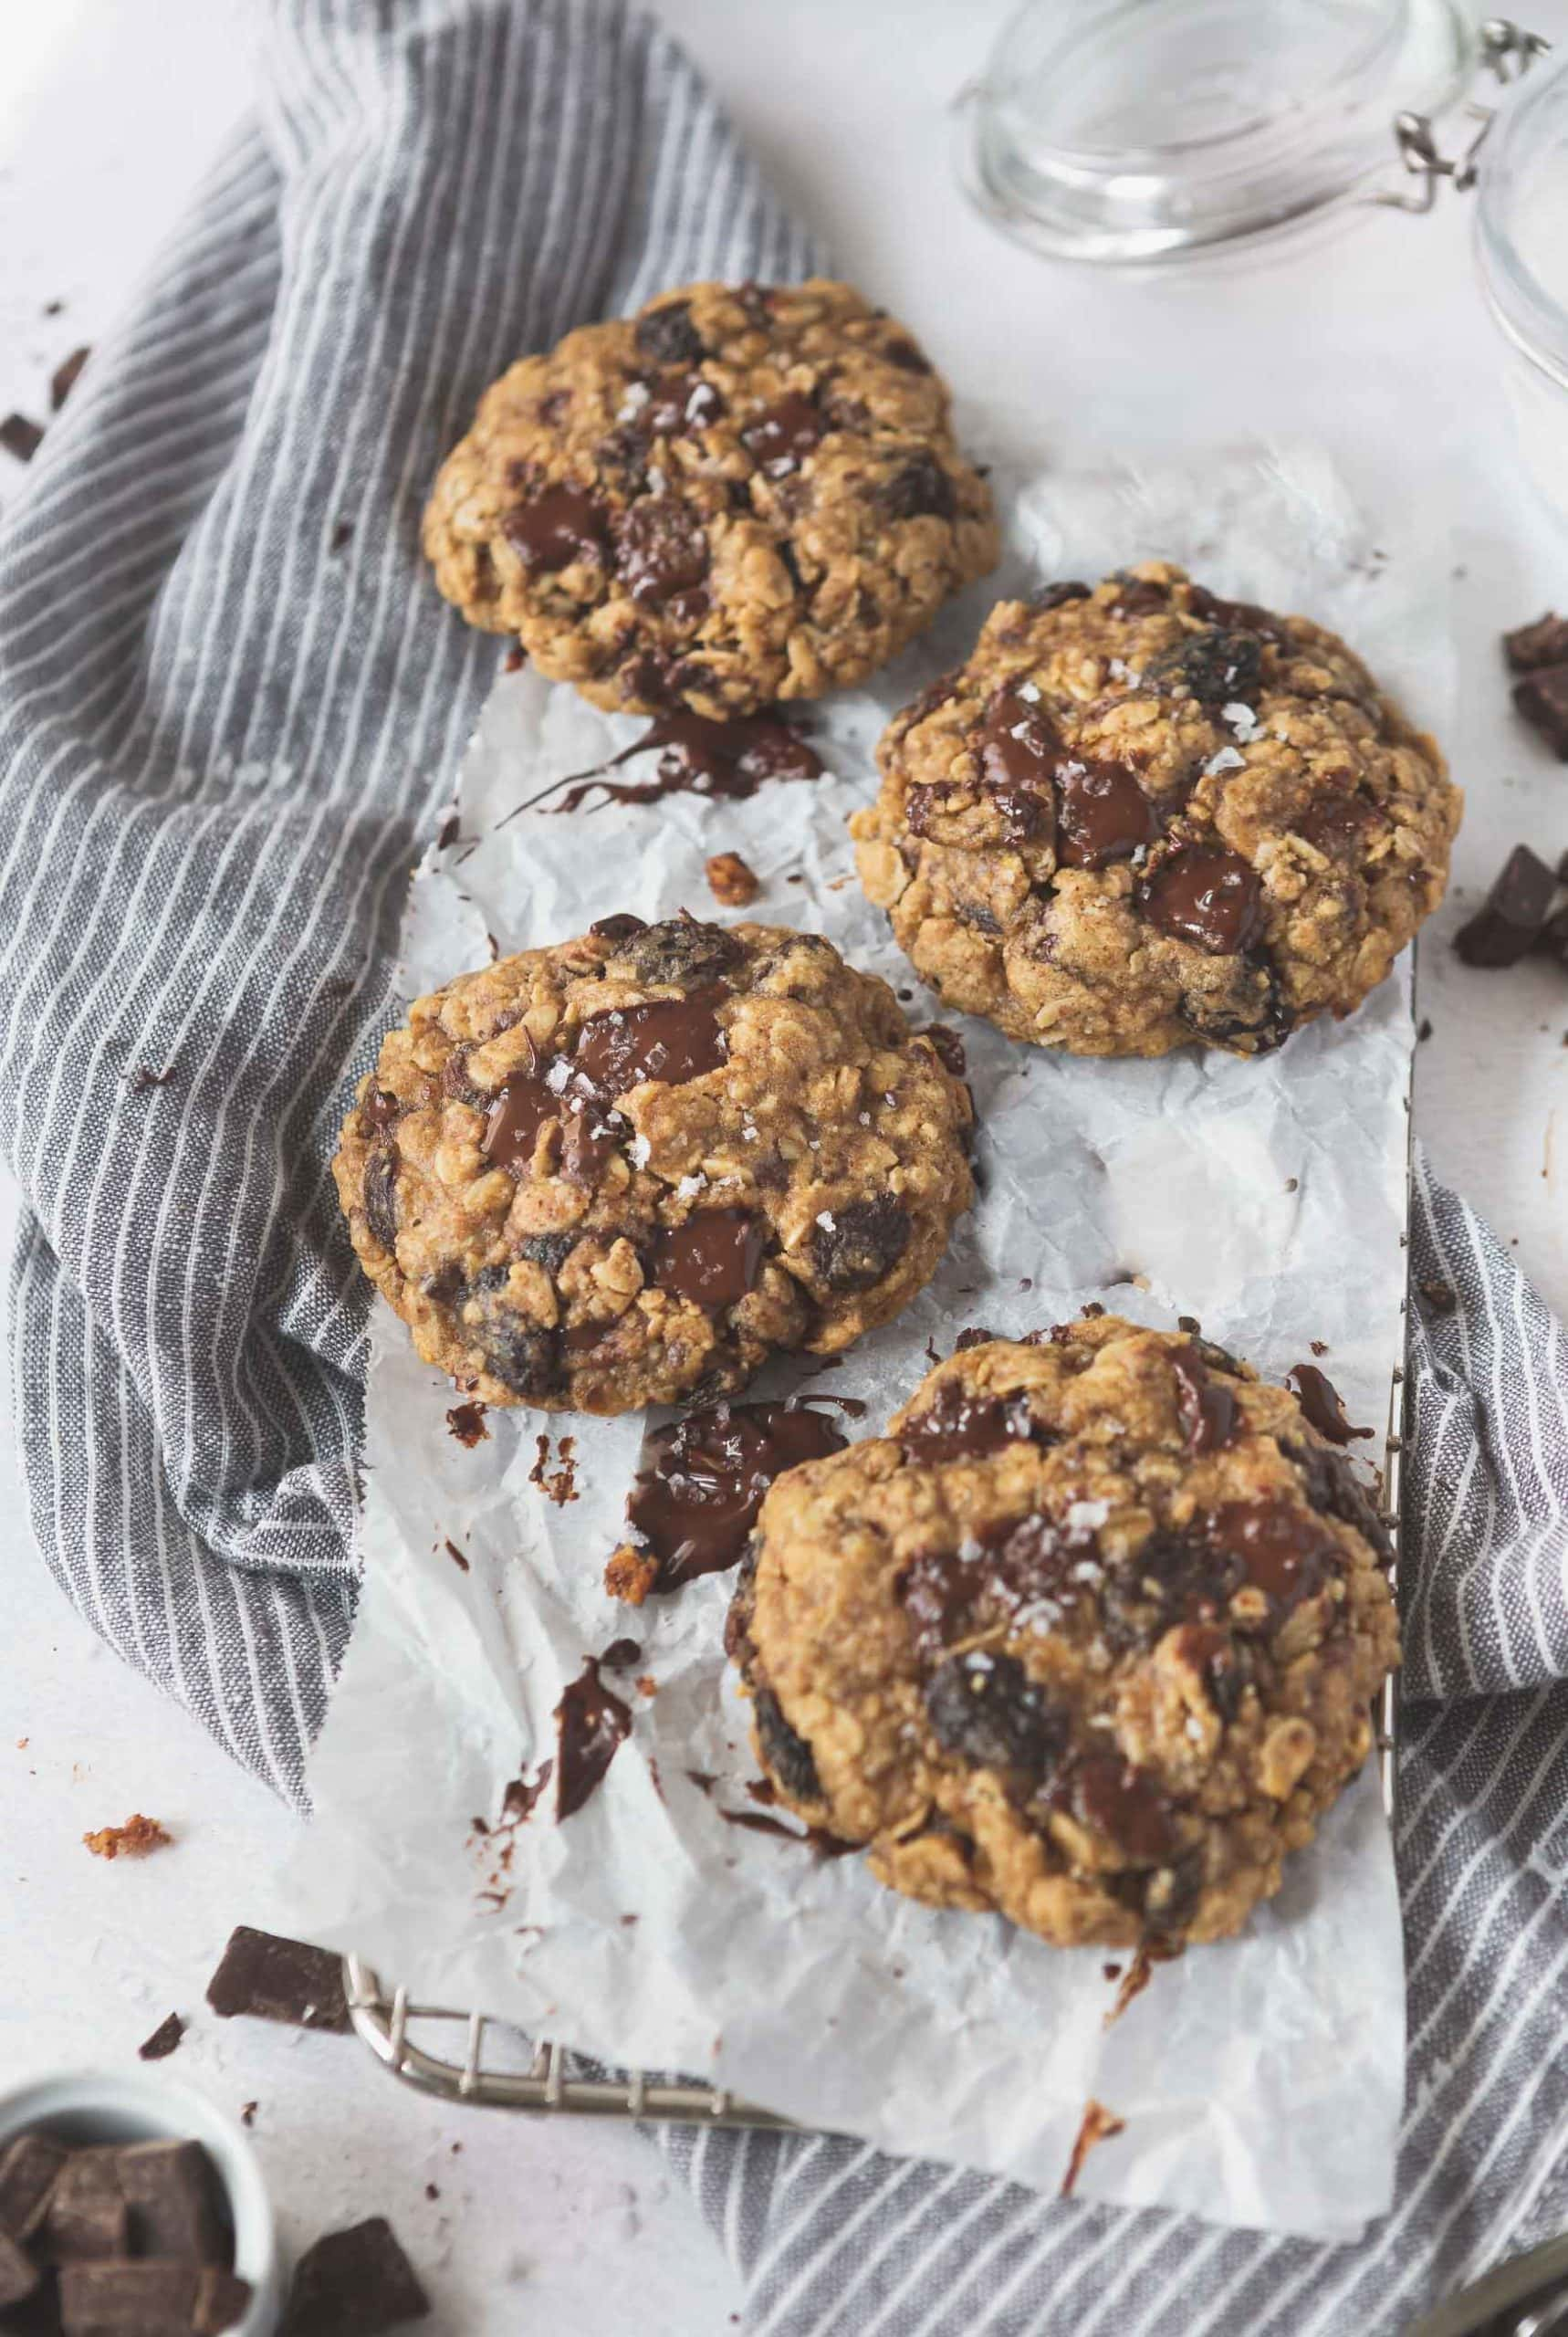 Four oatmeal raisin chocolate chip cookies. There are raisins and chocolate chunks in the cookies, and they are on parchment paper with chunks of melted chocolate around the cookies.